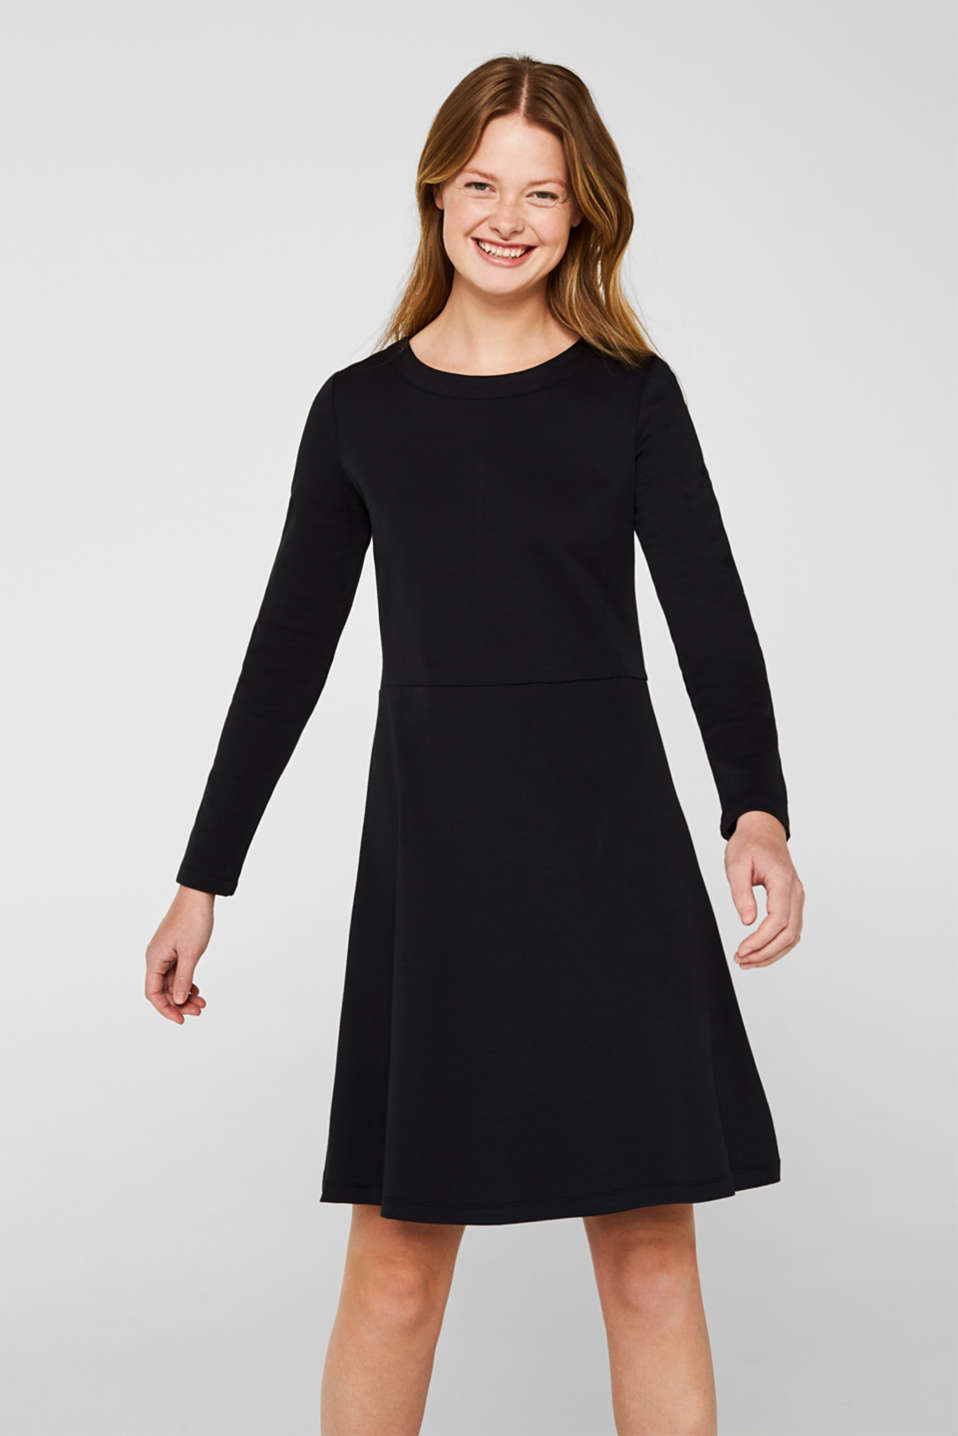 edc - Textured stretch jersey dress